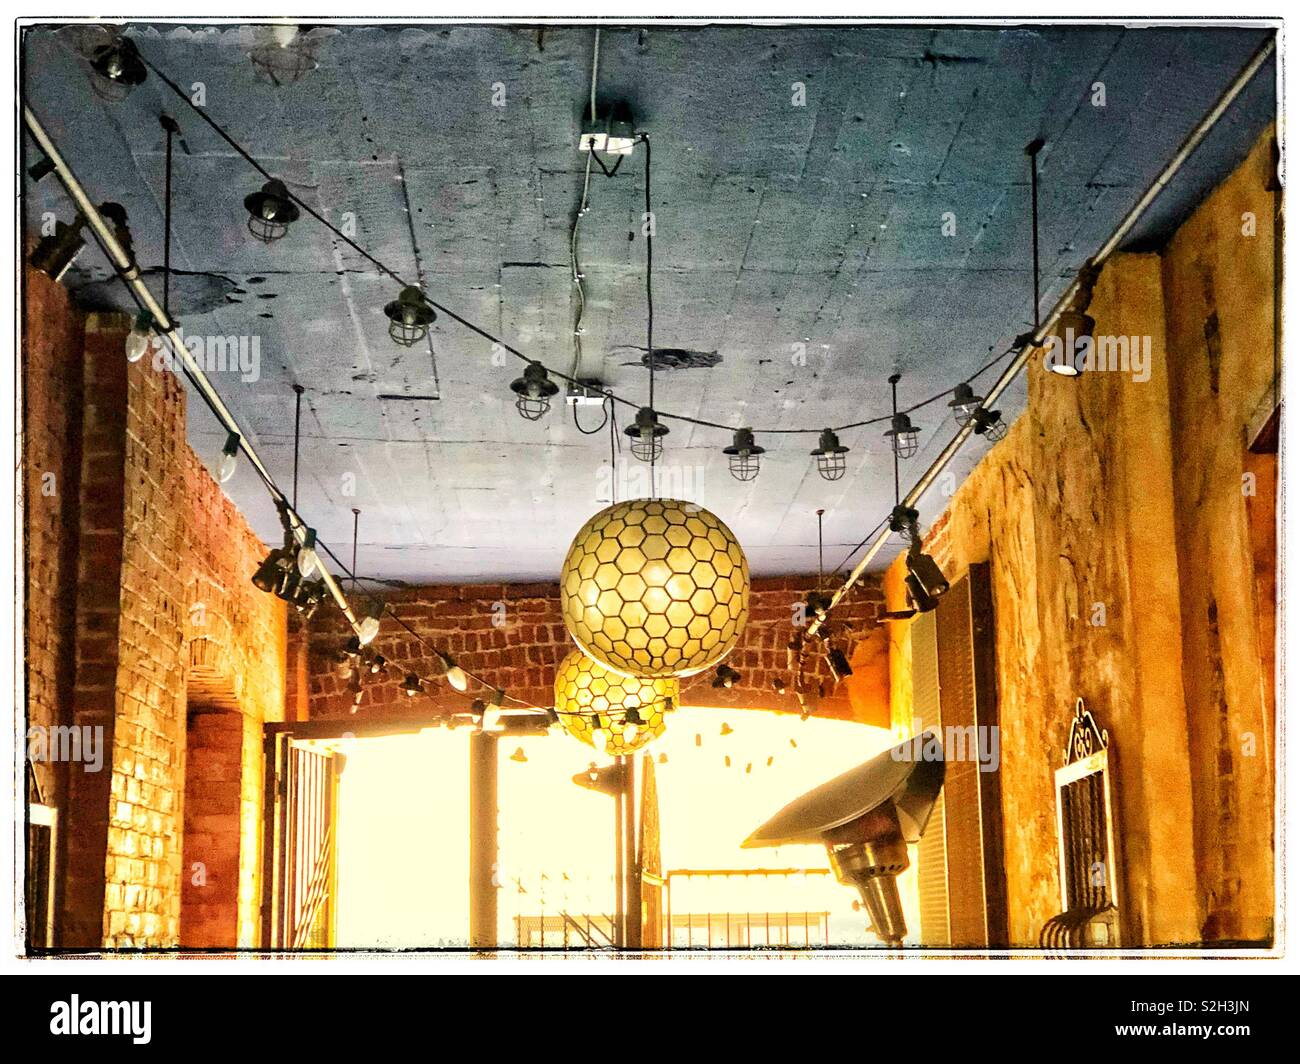 Hanging decorative lights in an alleyway Stock Photo